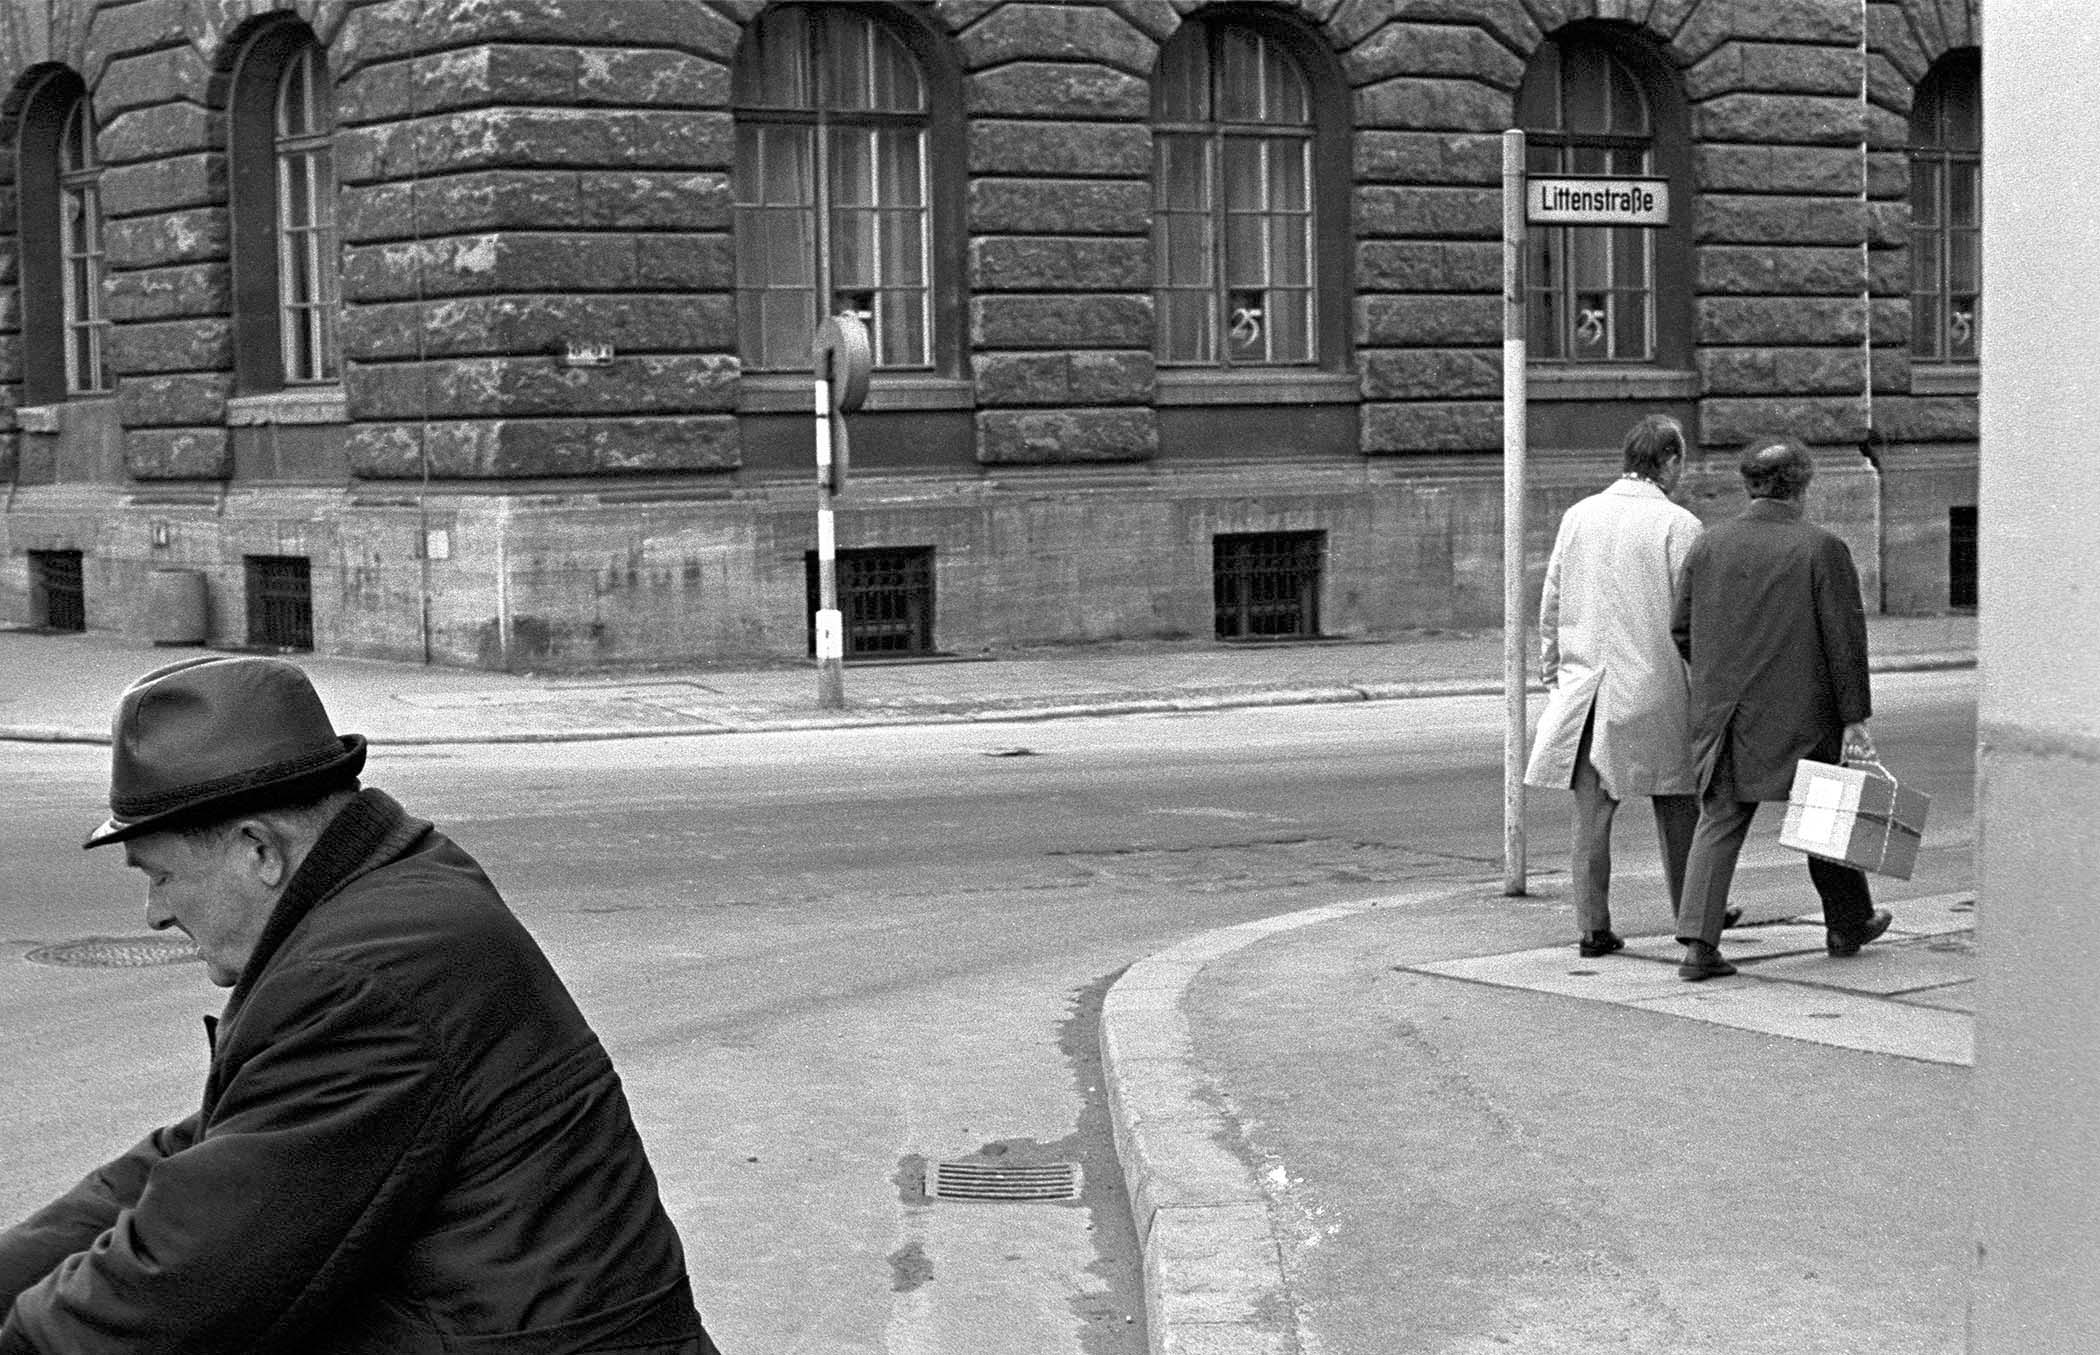 berlin3_23. Littenstrasse, East Berlin,1974